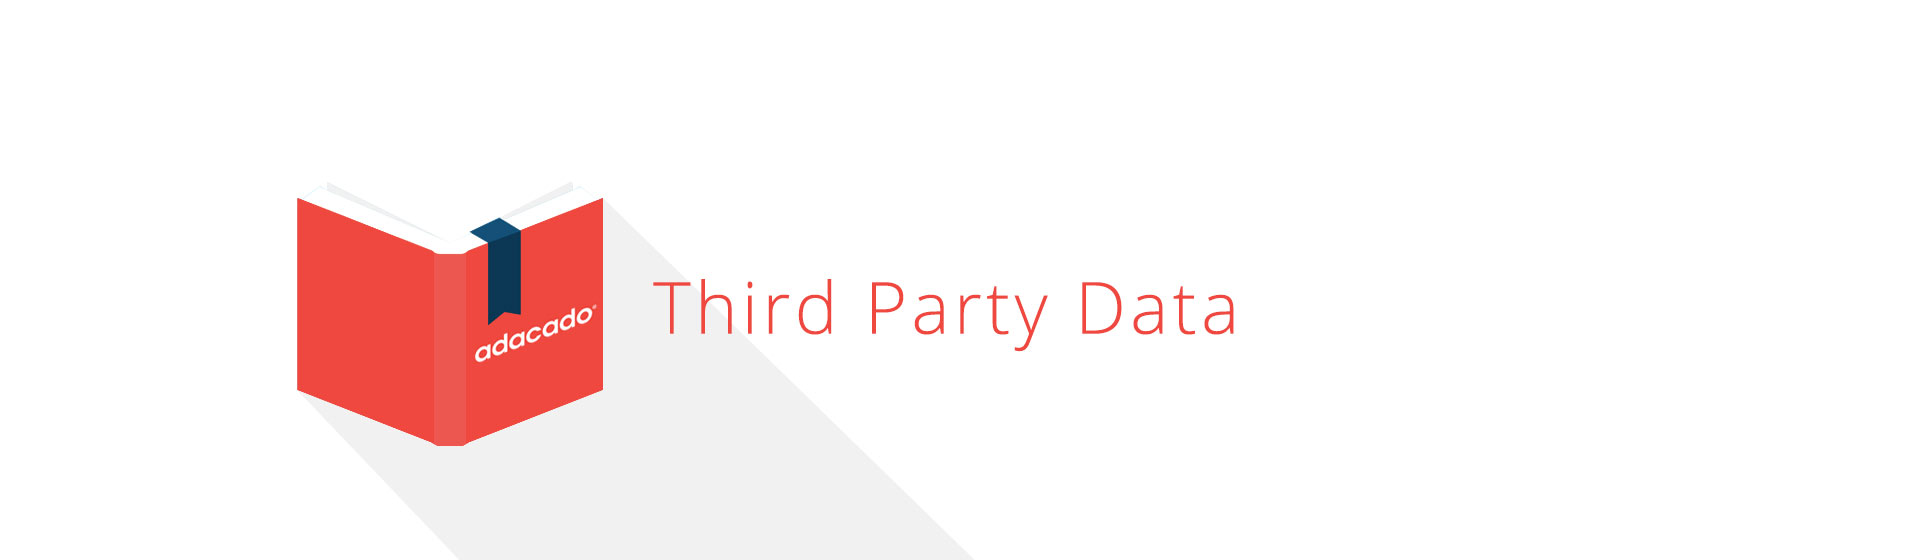 third-party data